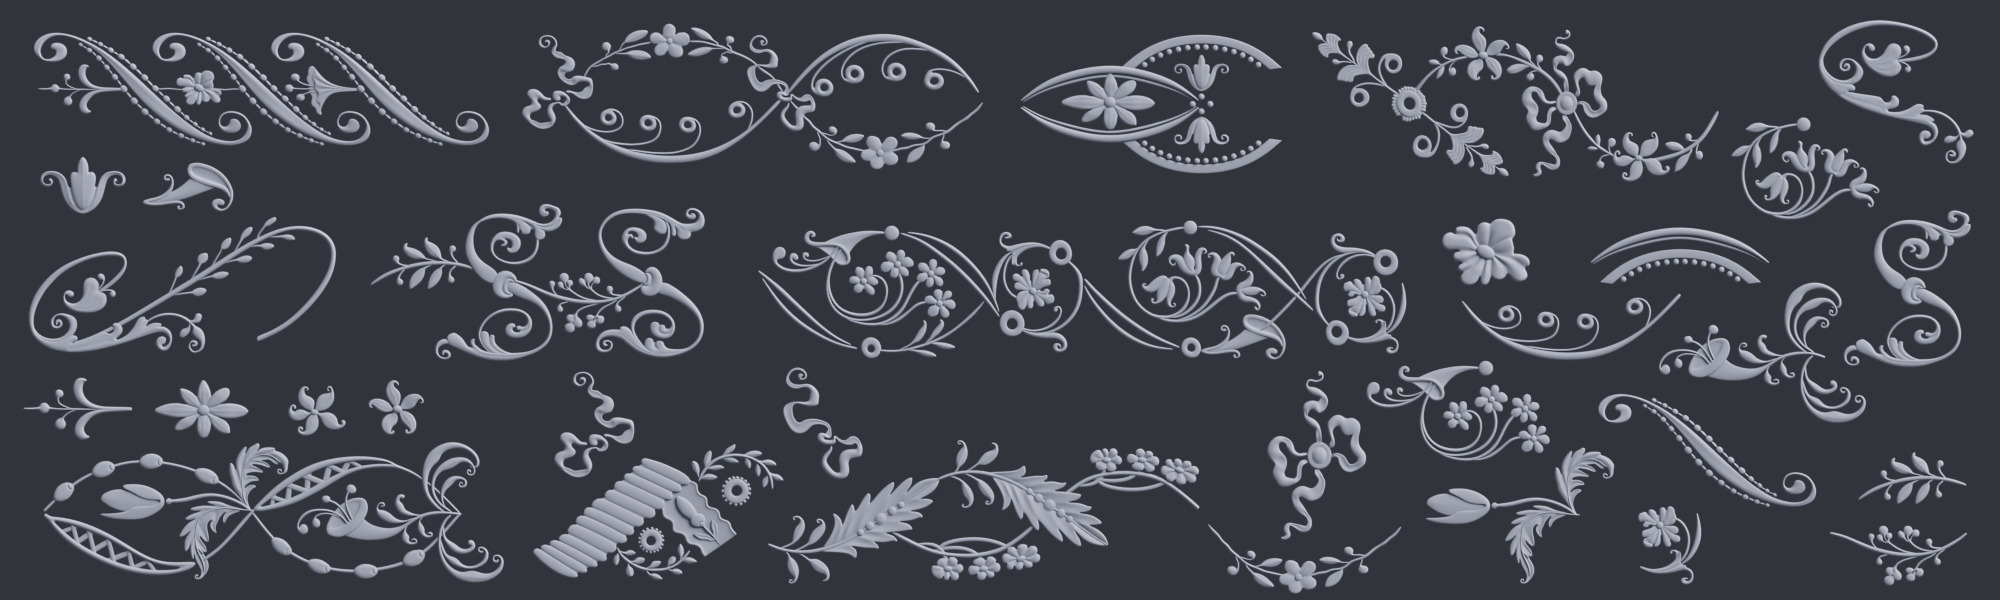 TexturesCom_Baroque_Set_2_header4.jpg